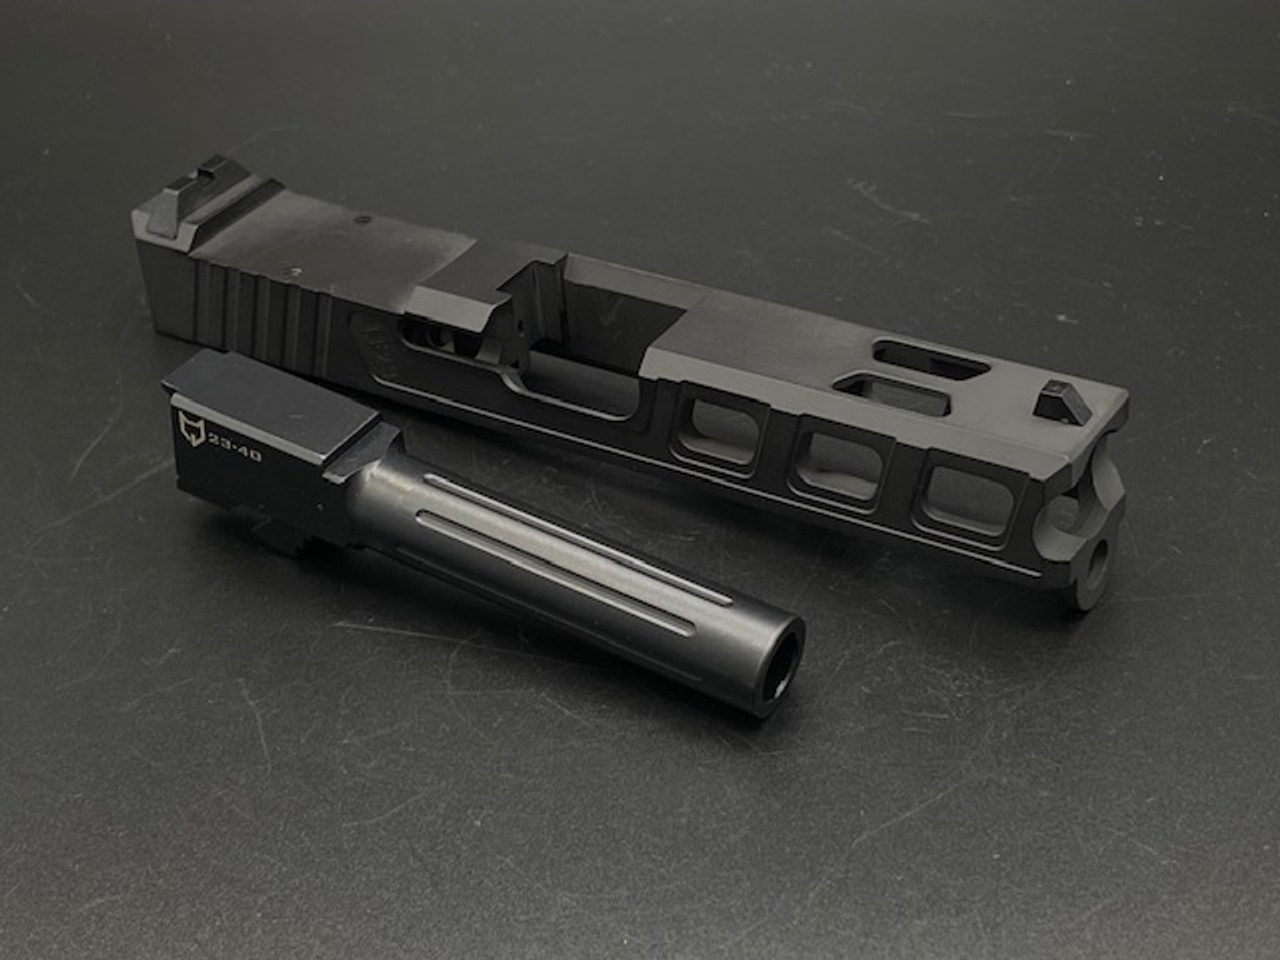 MDX Arms G23 LF23 .40SW with RMR Cut Build Kit - No Frame